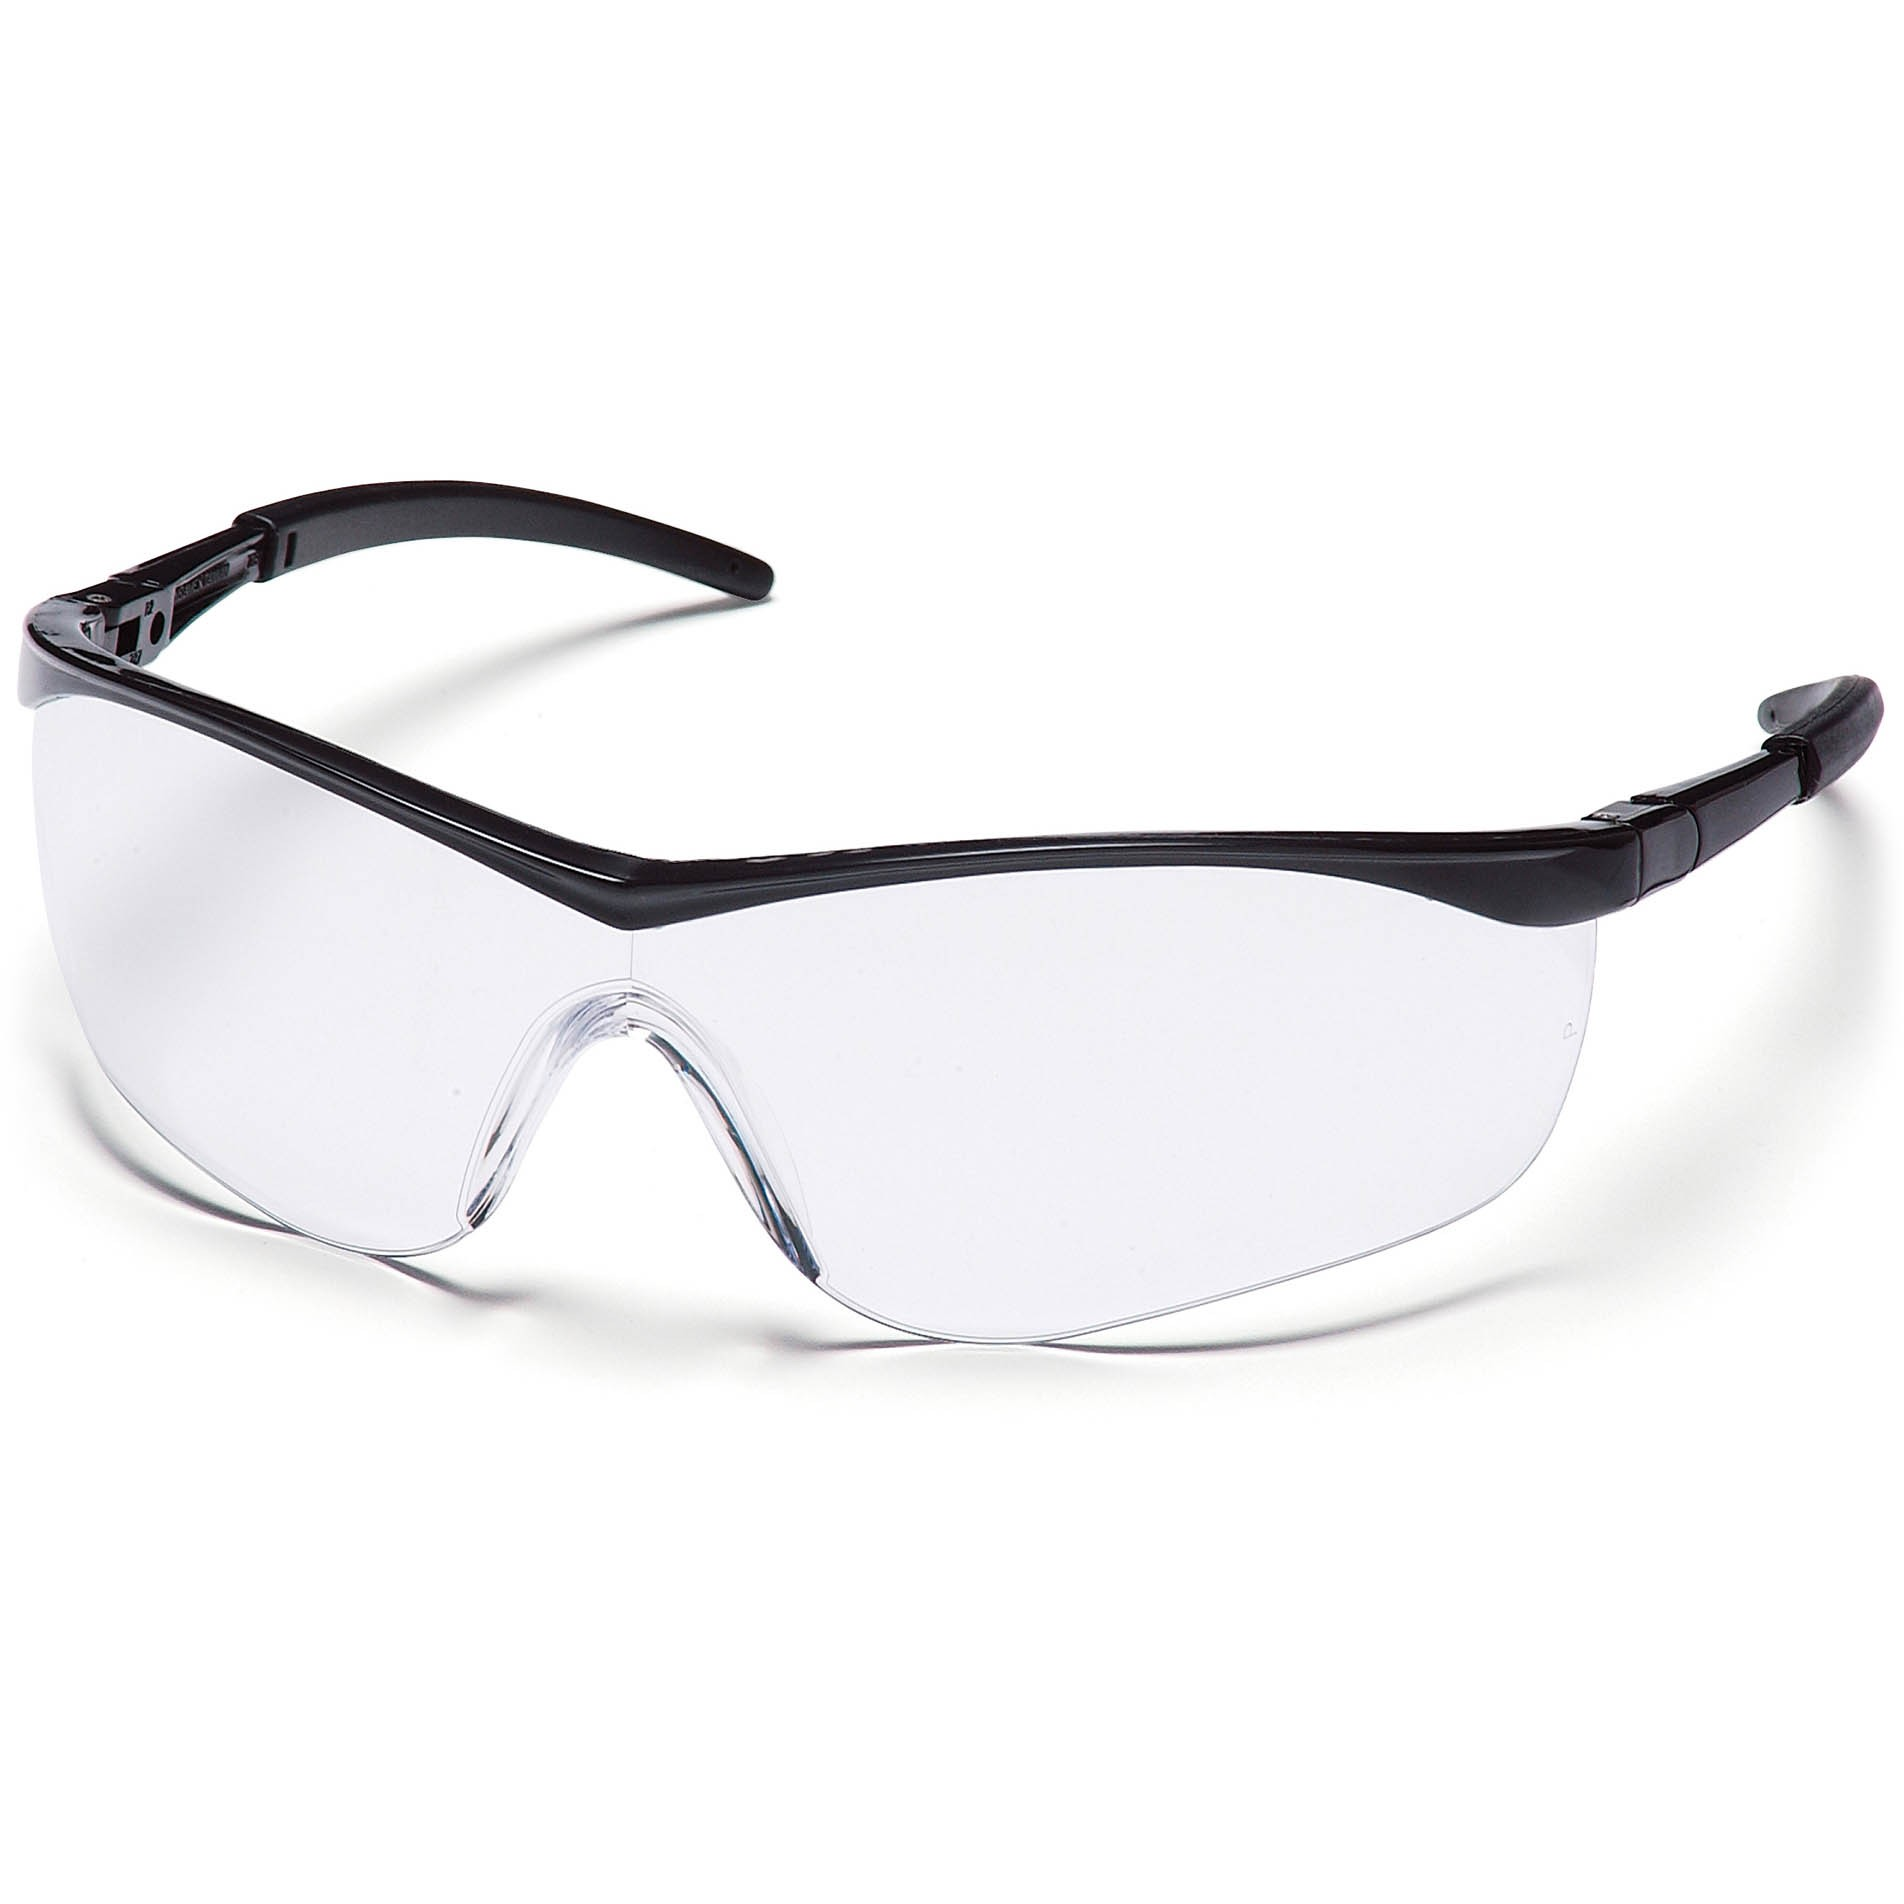 Safety Glasses Black Frame : Pyramex Mayan Safety Glasses - Black Frame - Clear Lens ...